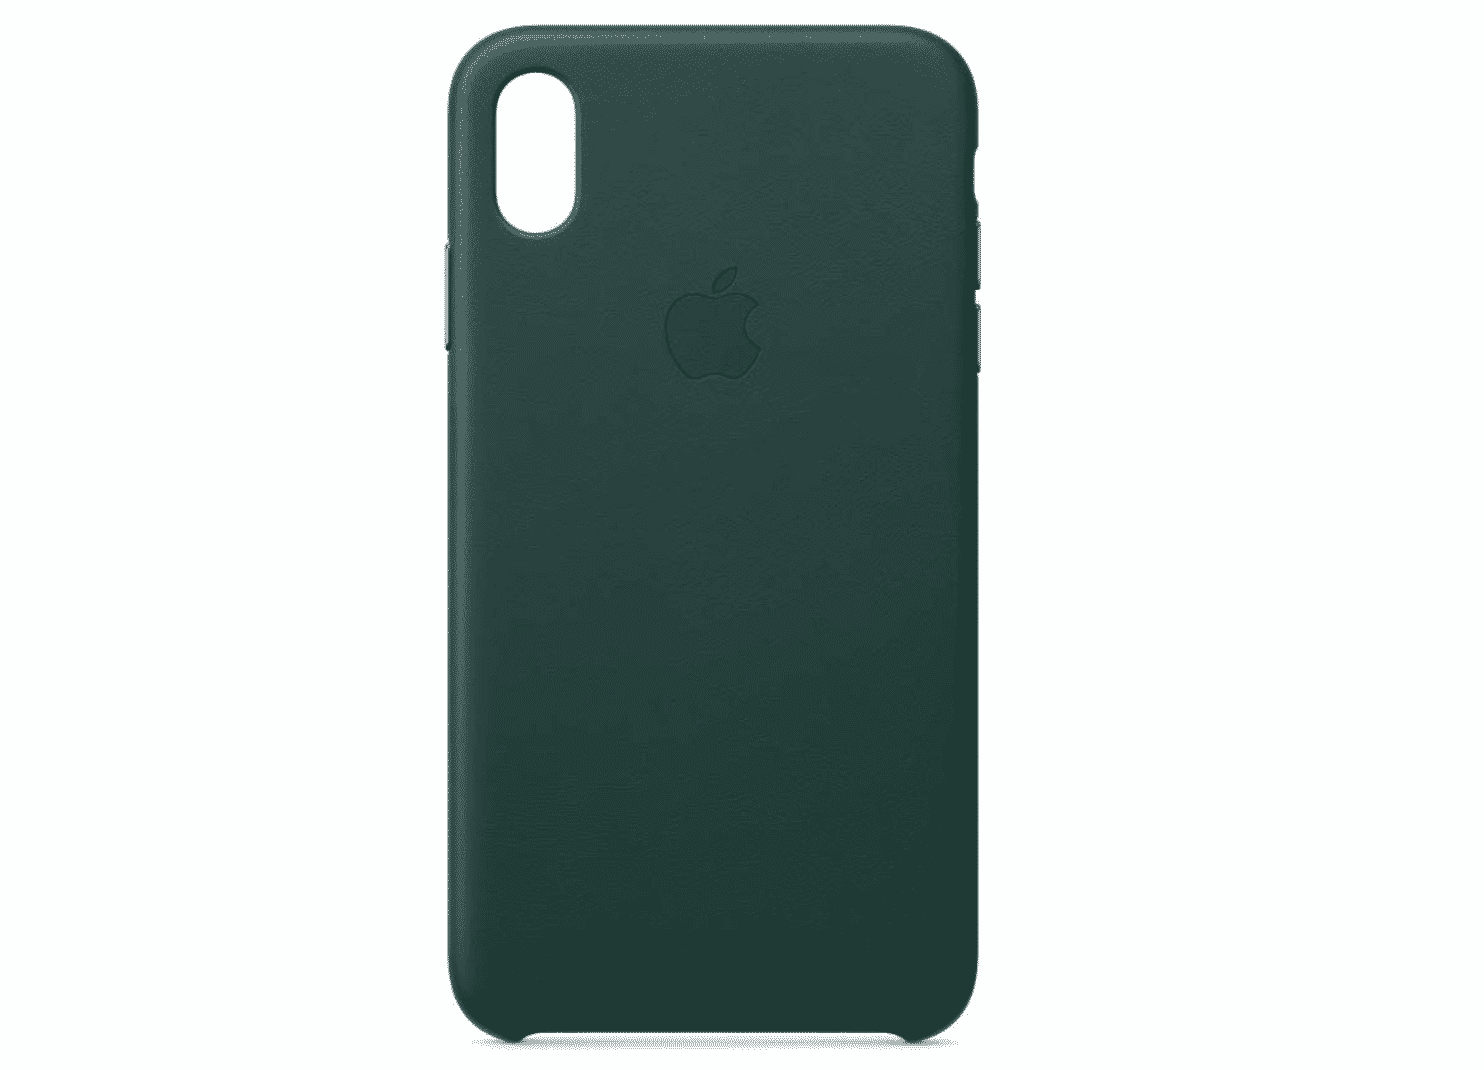 iPhone XS Max Leather Case Drops to Only $30